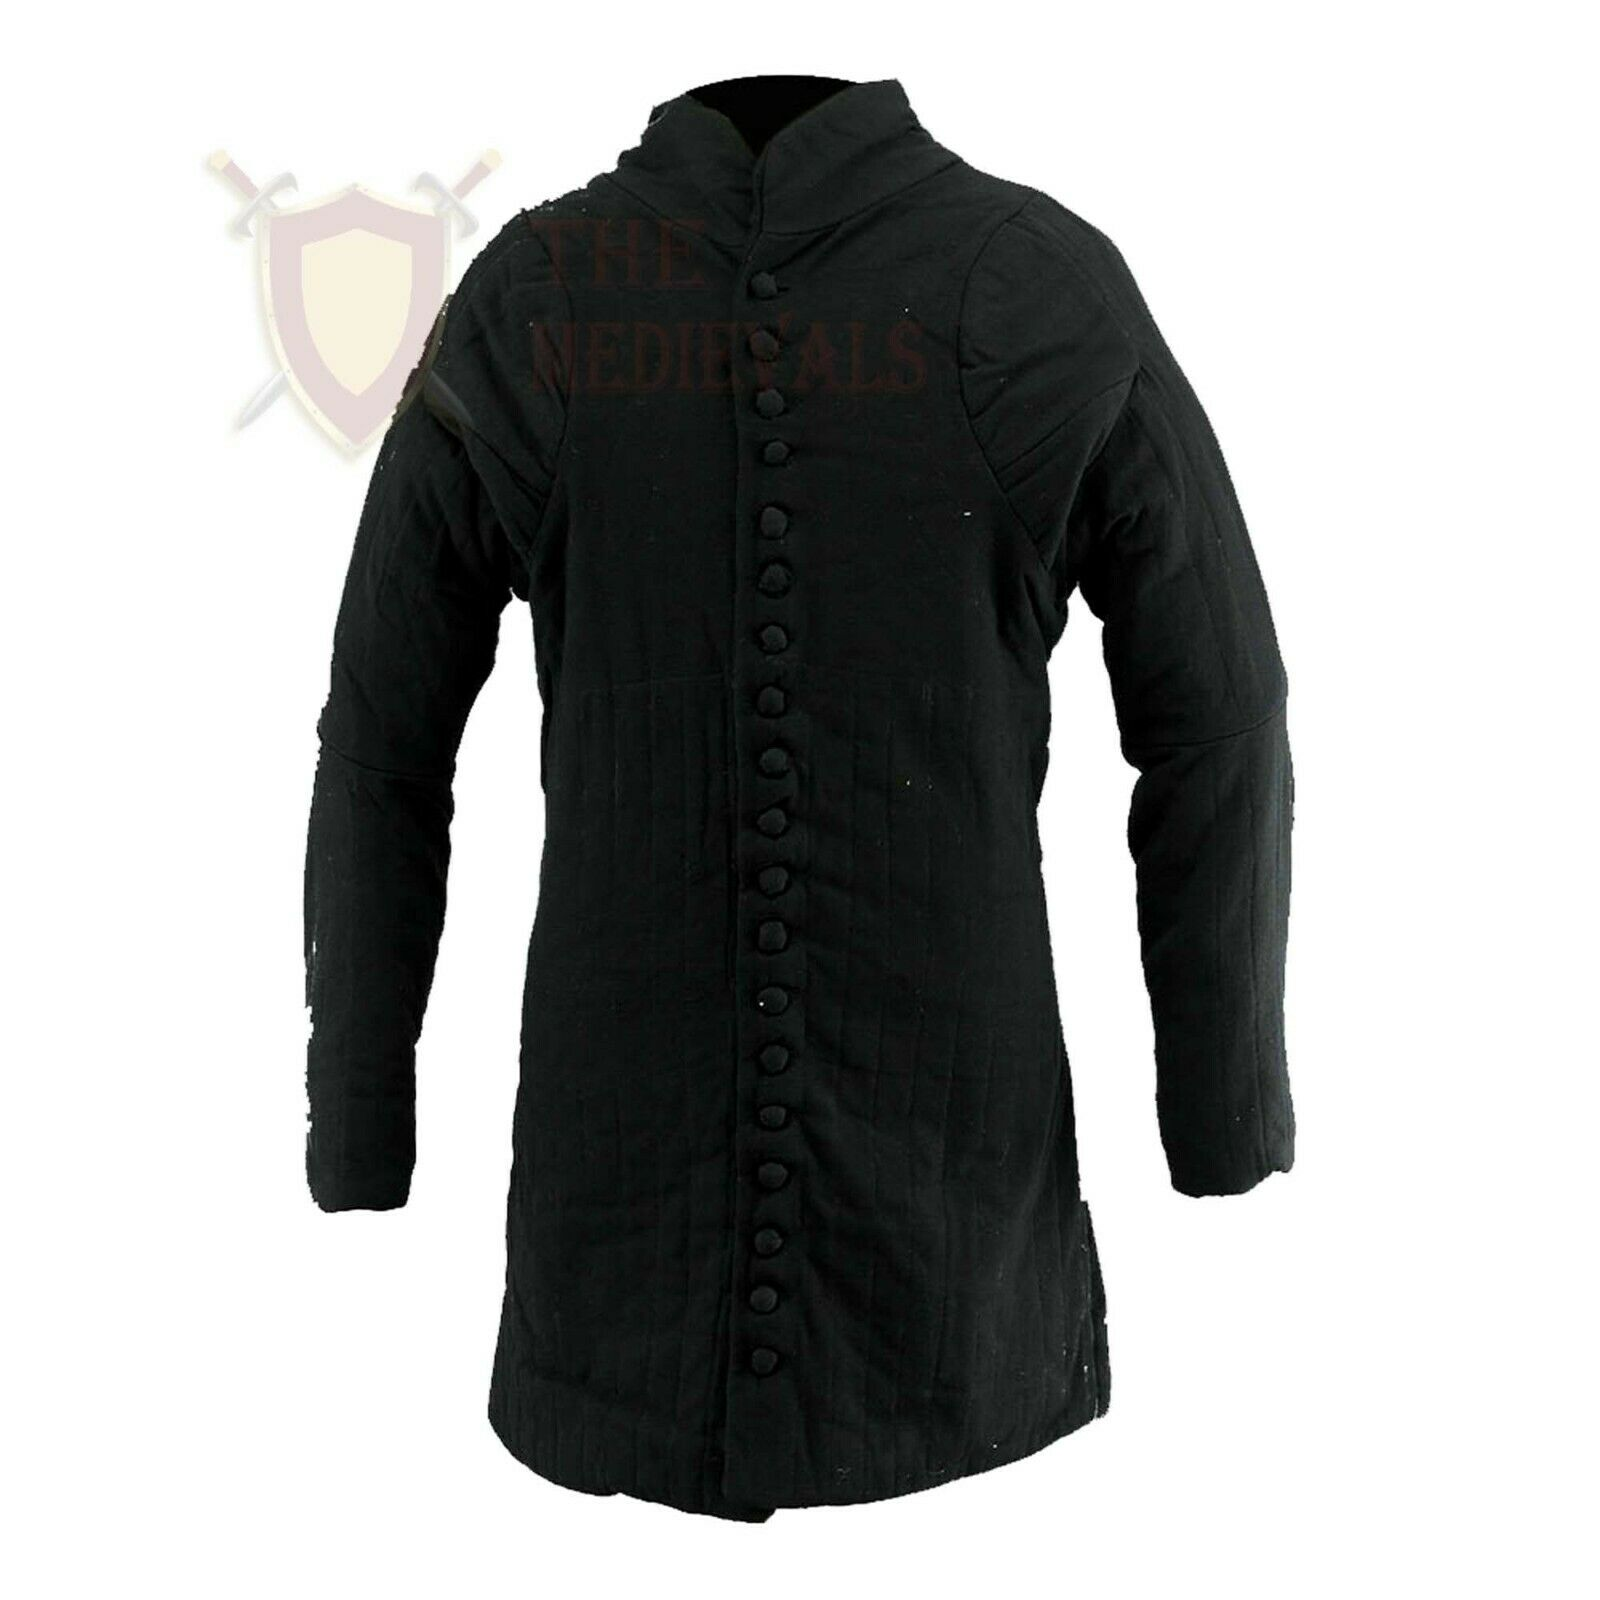 THE MEDIEVALS Full Length Jacket Aketon Armor Thick Padded Coat Gambeson Costume